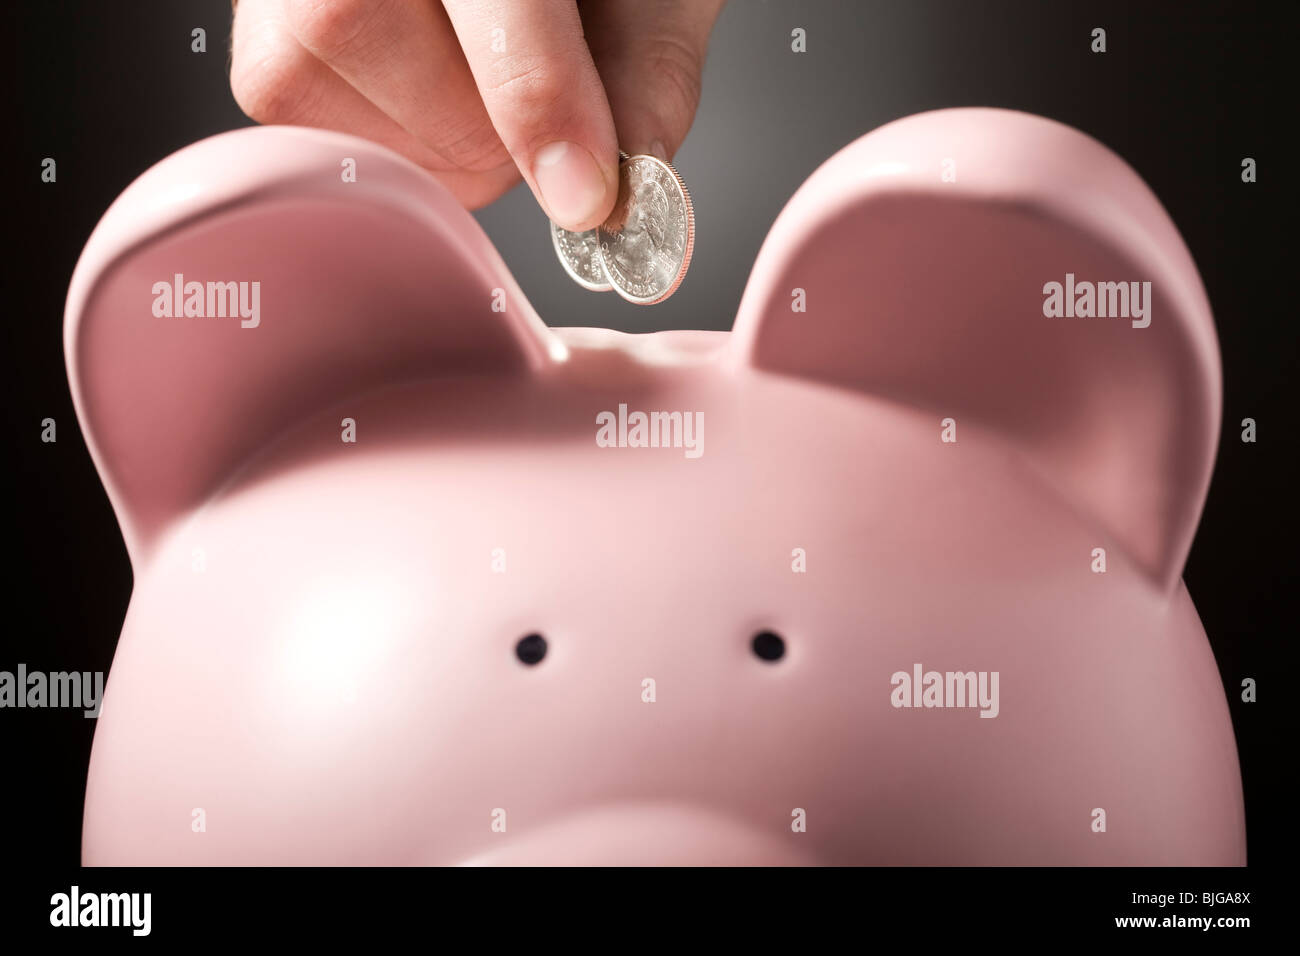 hand putting two quarters in a piggy bank - Stock Image